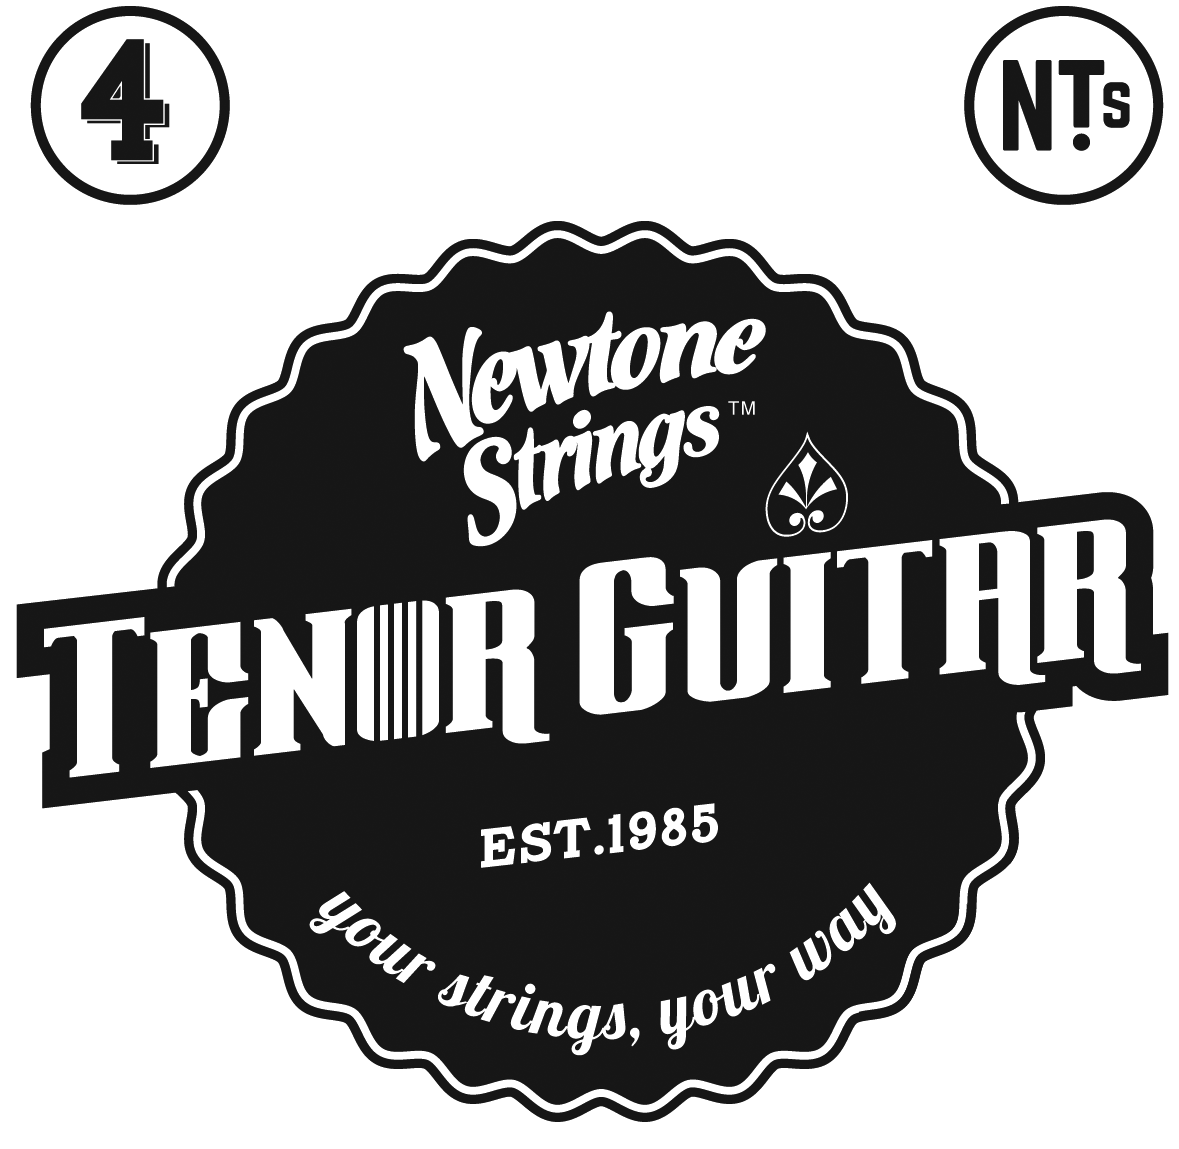 tennorGuitar-front